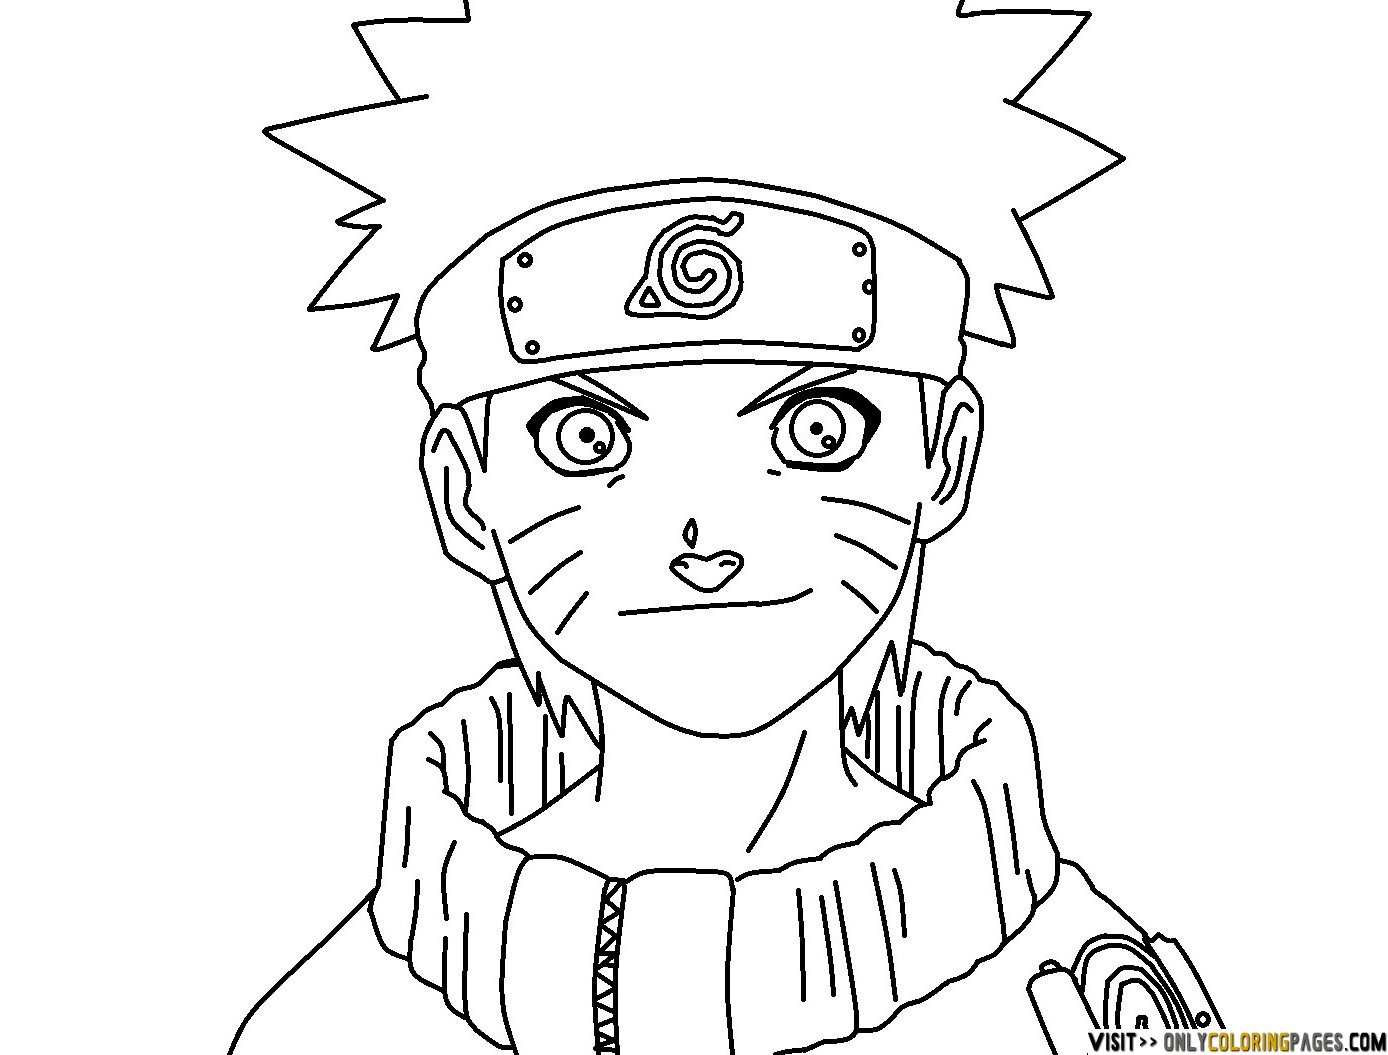 1388x1055 Naruto Coloring Pages, Printable Naruto Coloring Pages, Free